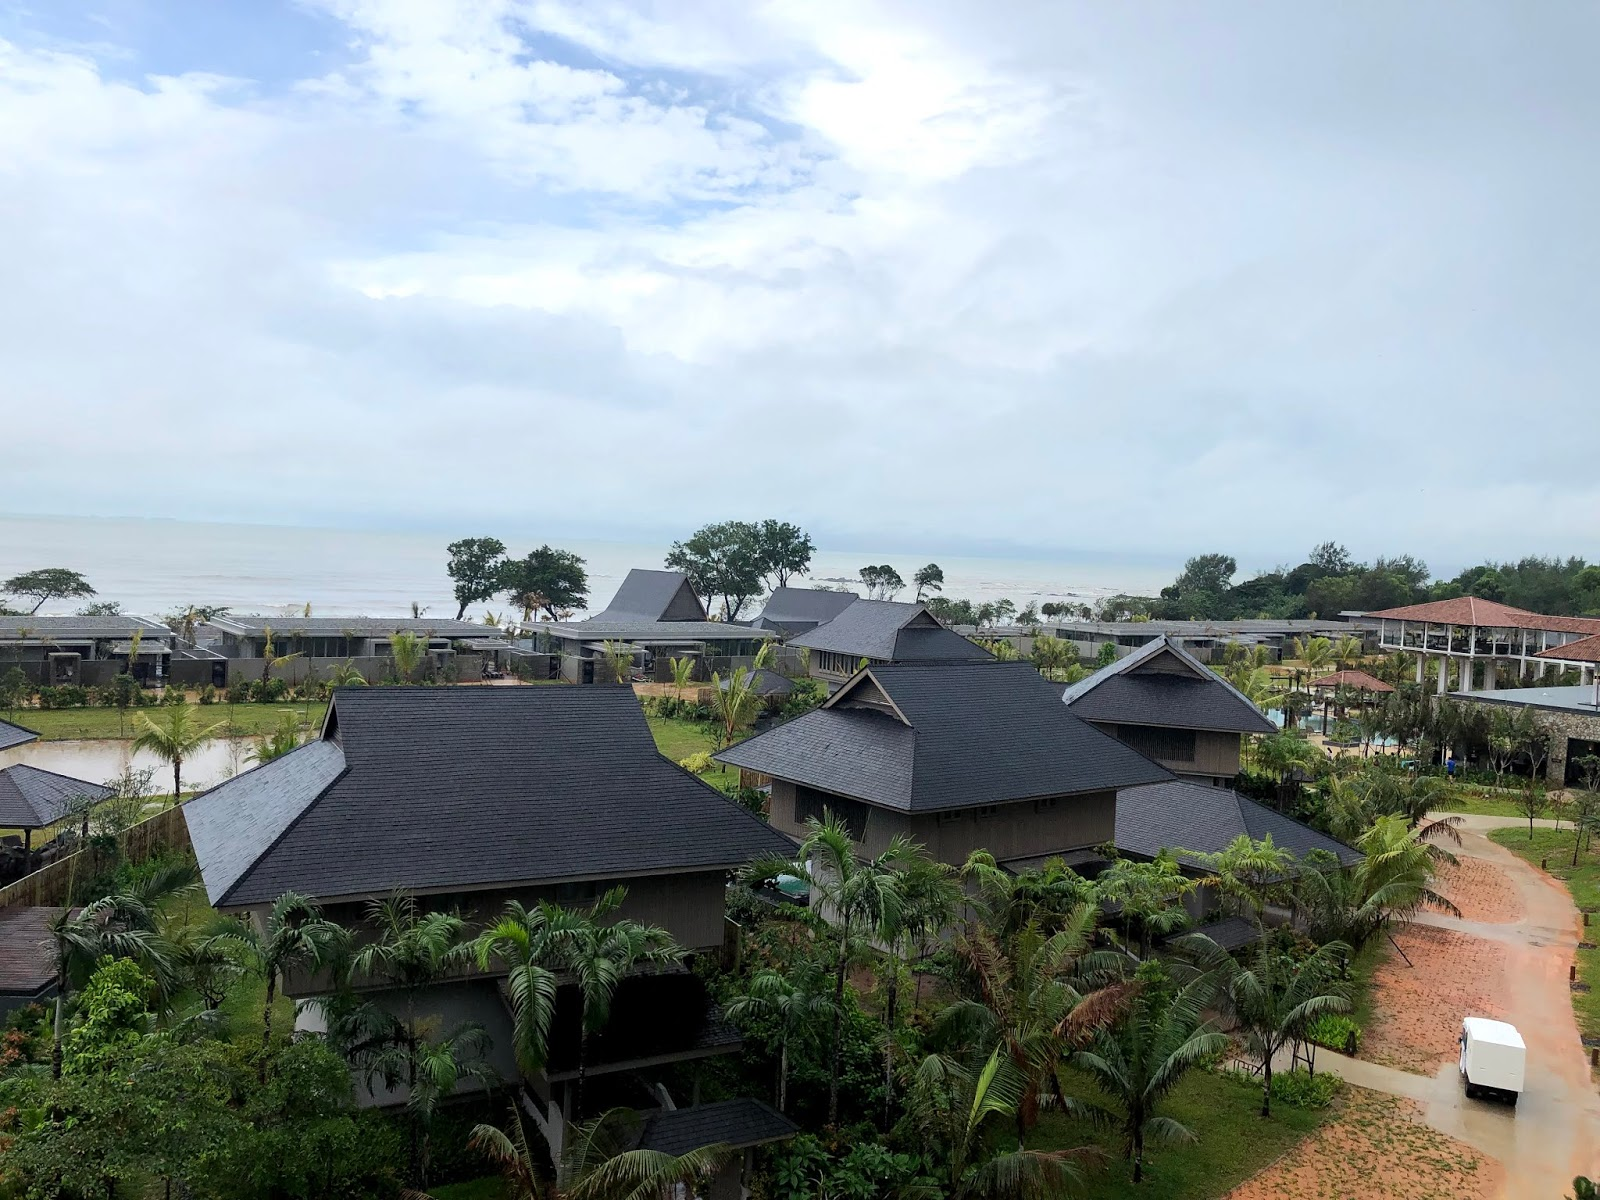 Anantara Desaru Coast resort review